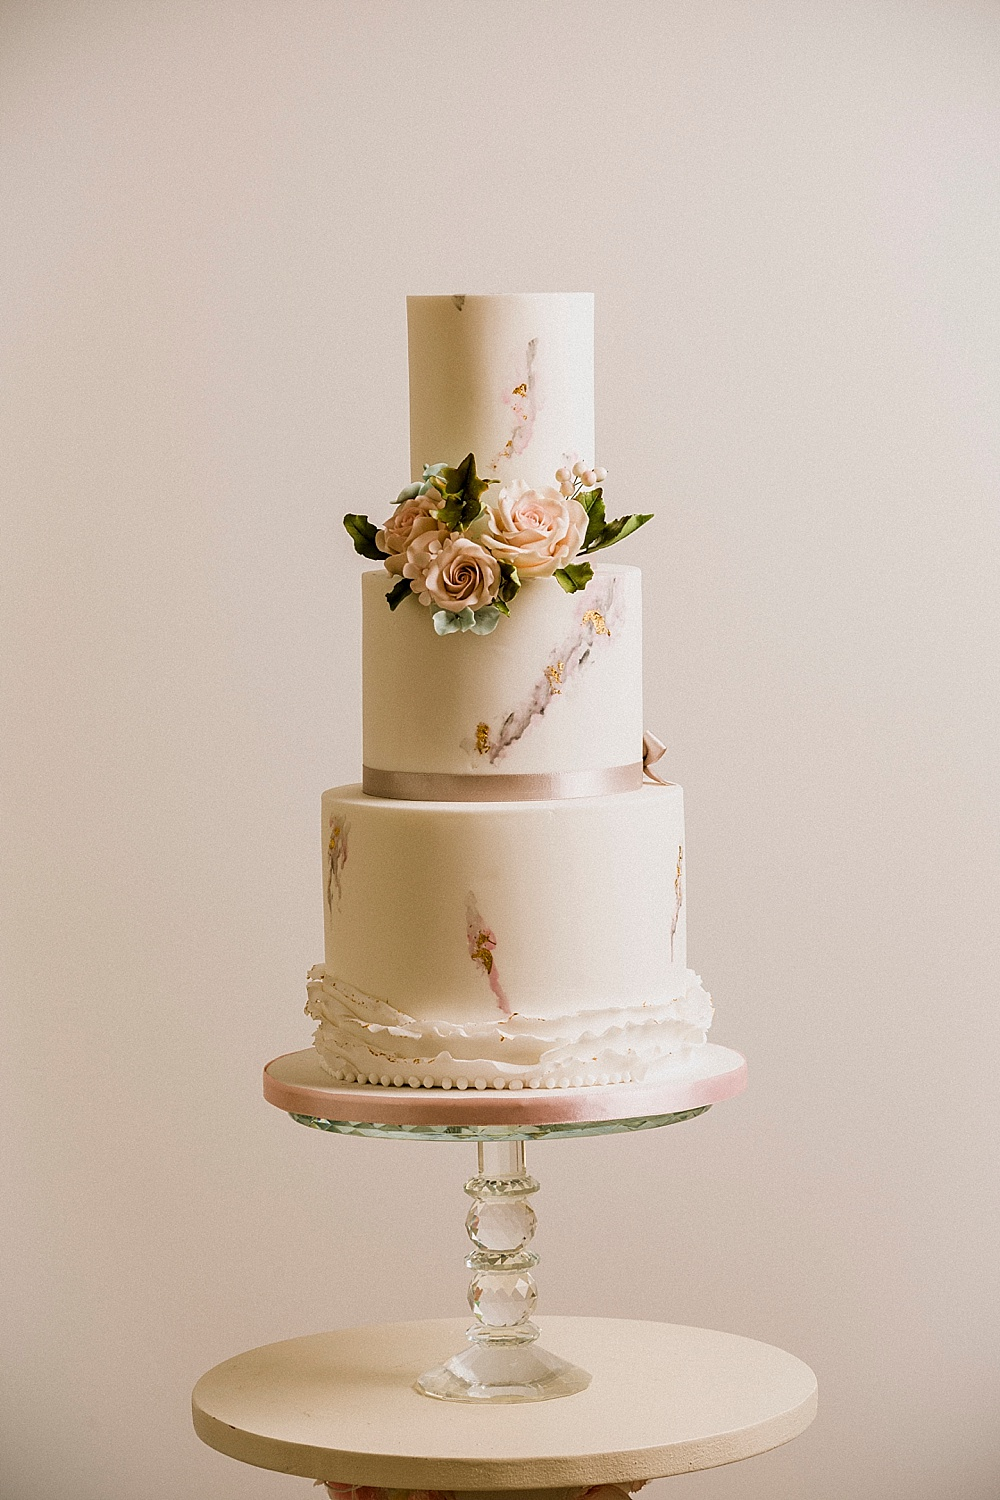 Iced Wedding Cakes From Top Uk Wedding Cake Makers Rmw The List